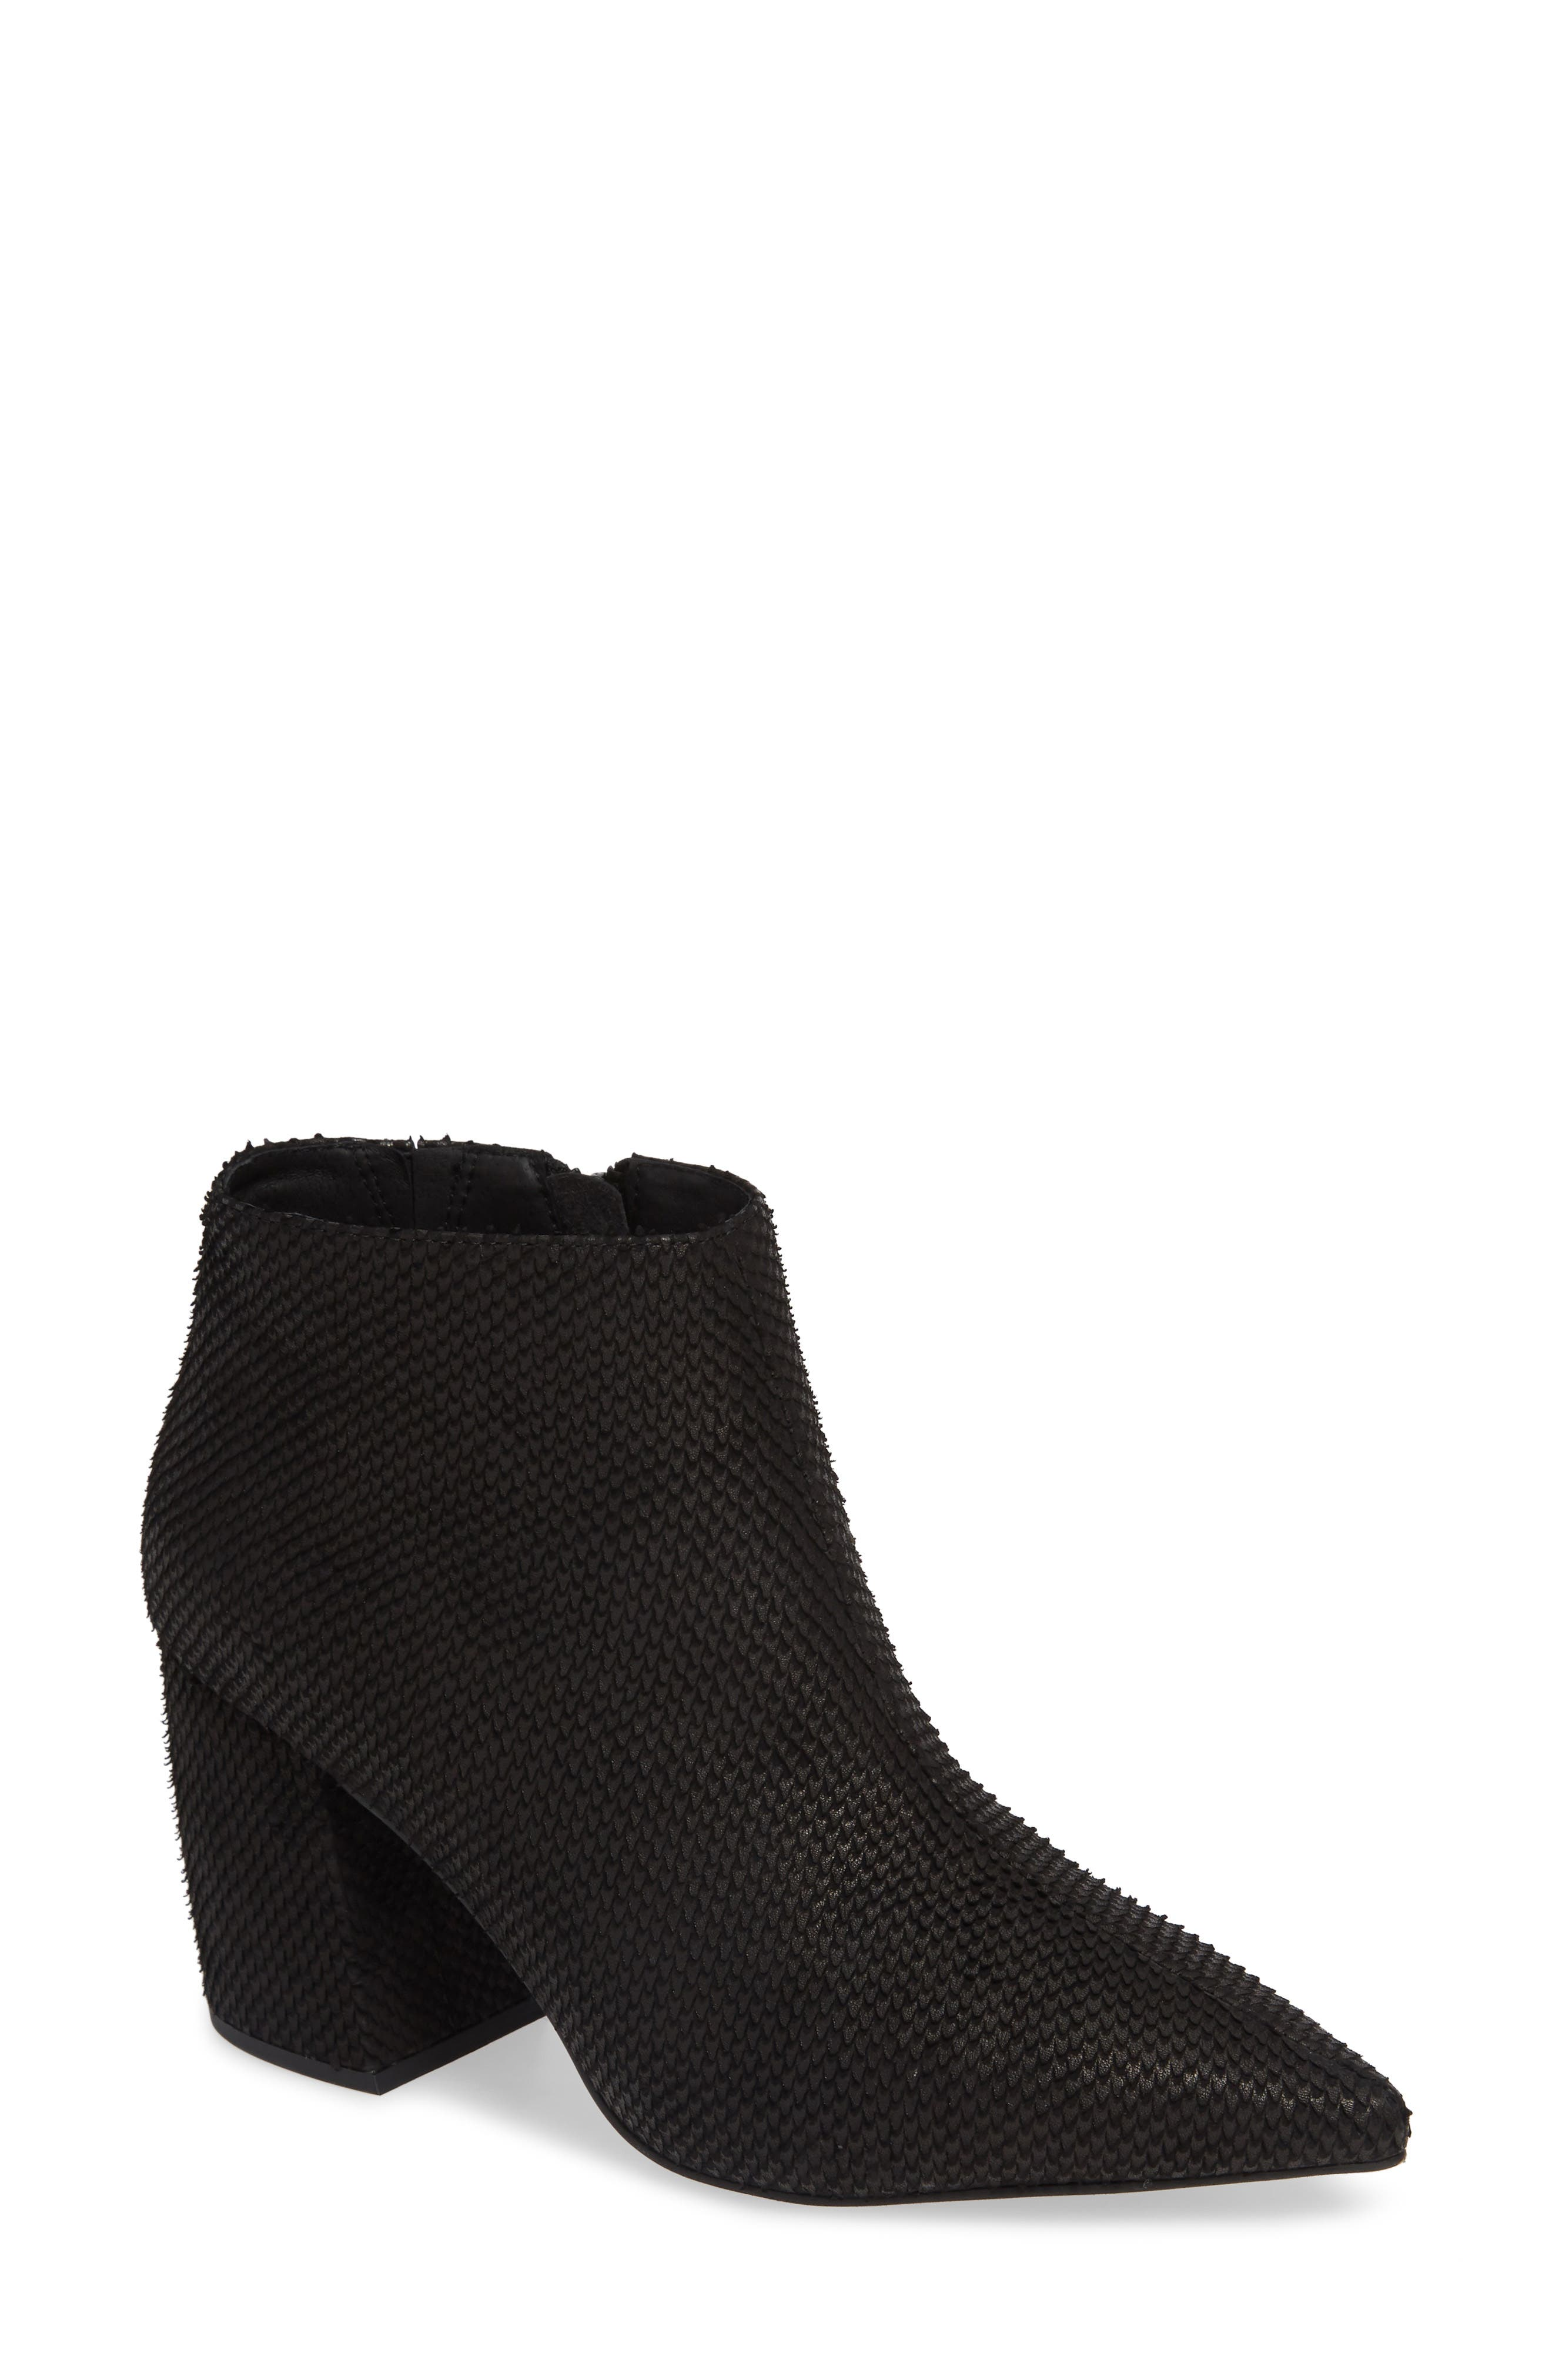 JEFFREY CAMPBELL Total Ankle Bootie, Main, color, BLACK SCALES